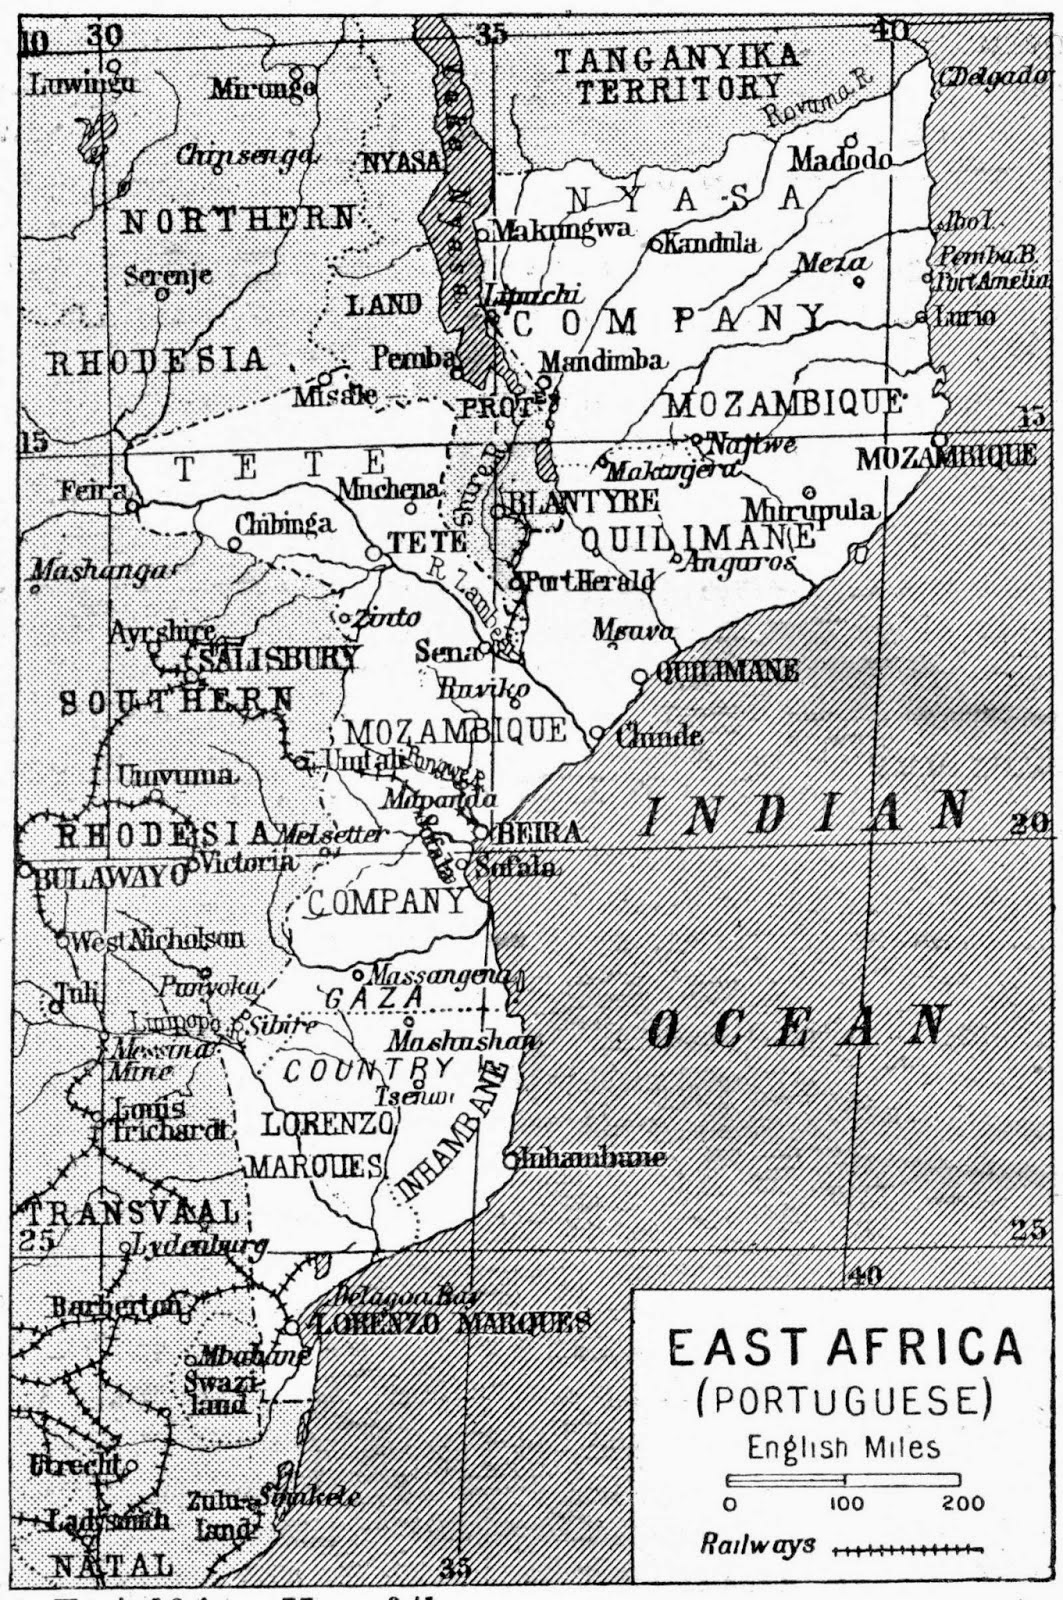 Map of Portuguese East Africa (1922)